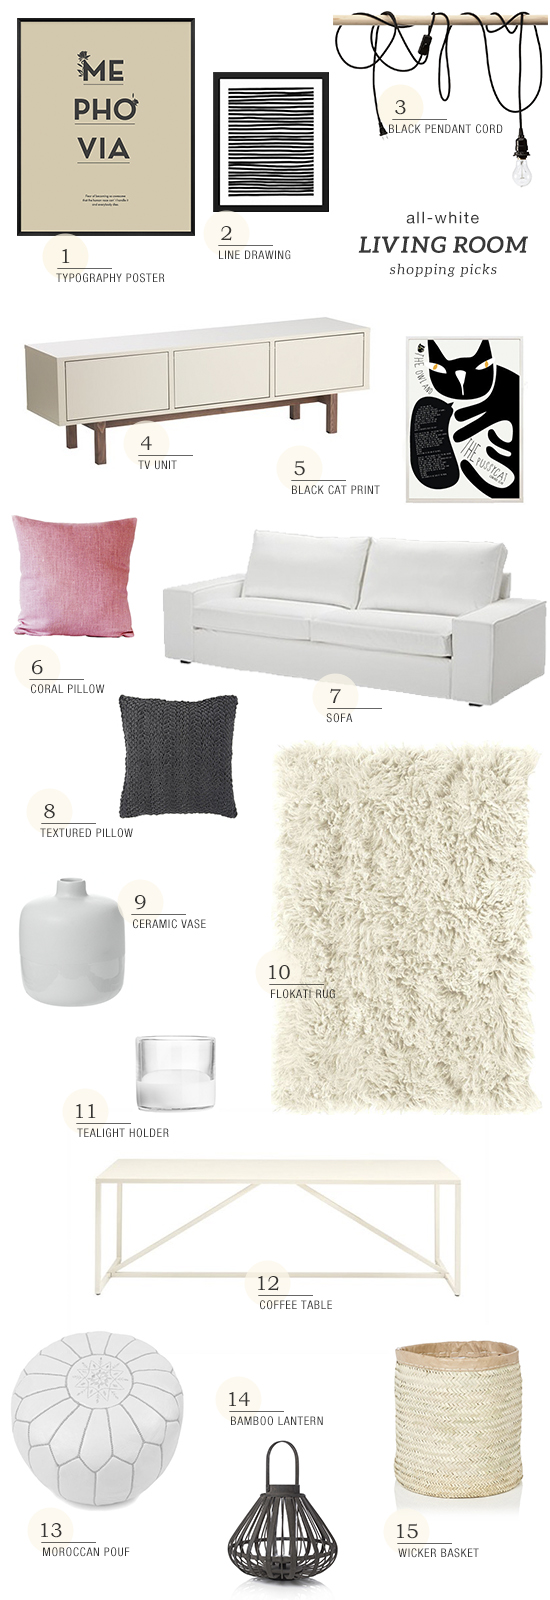 Scandinavian inspired white living room shopping picks | My Paradissi